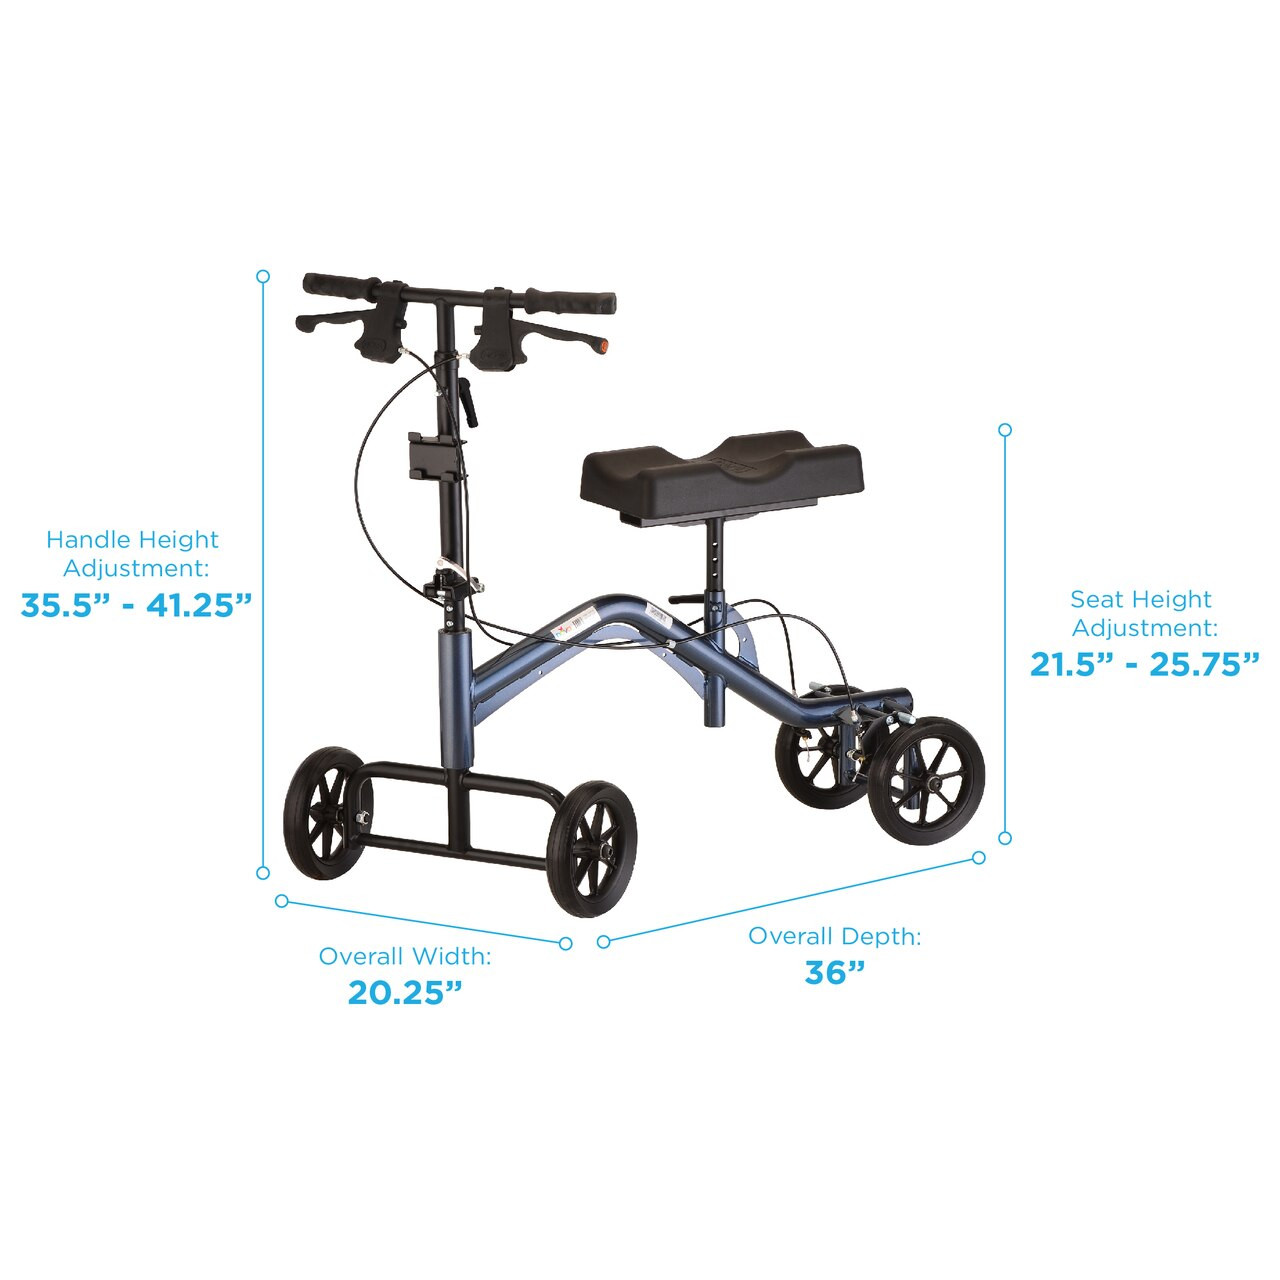 Nova Heavy Duty Tall Knee Walker / Knee Scooter demensions